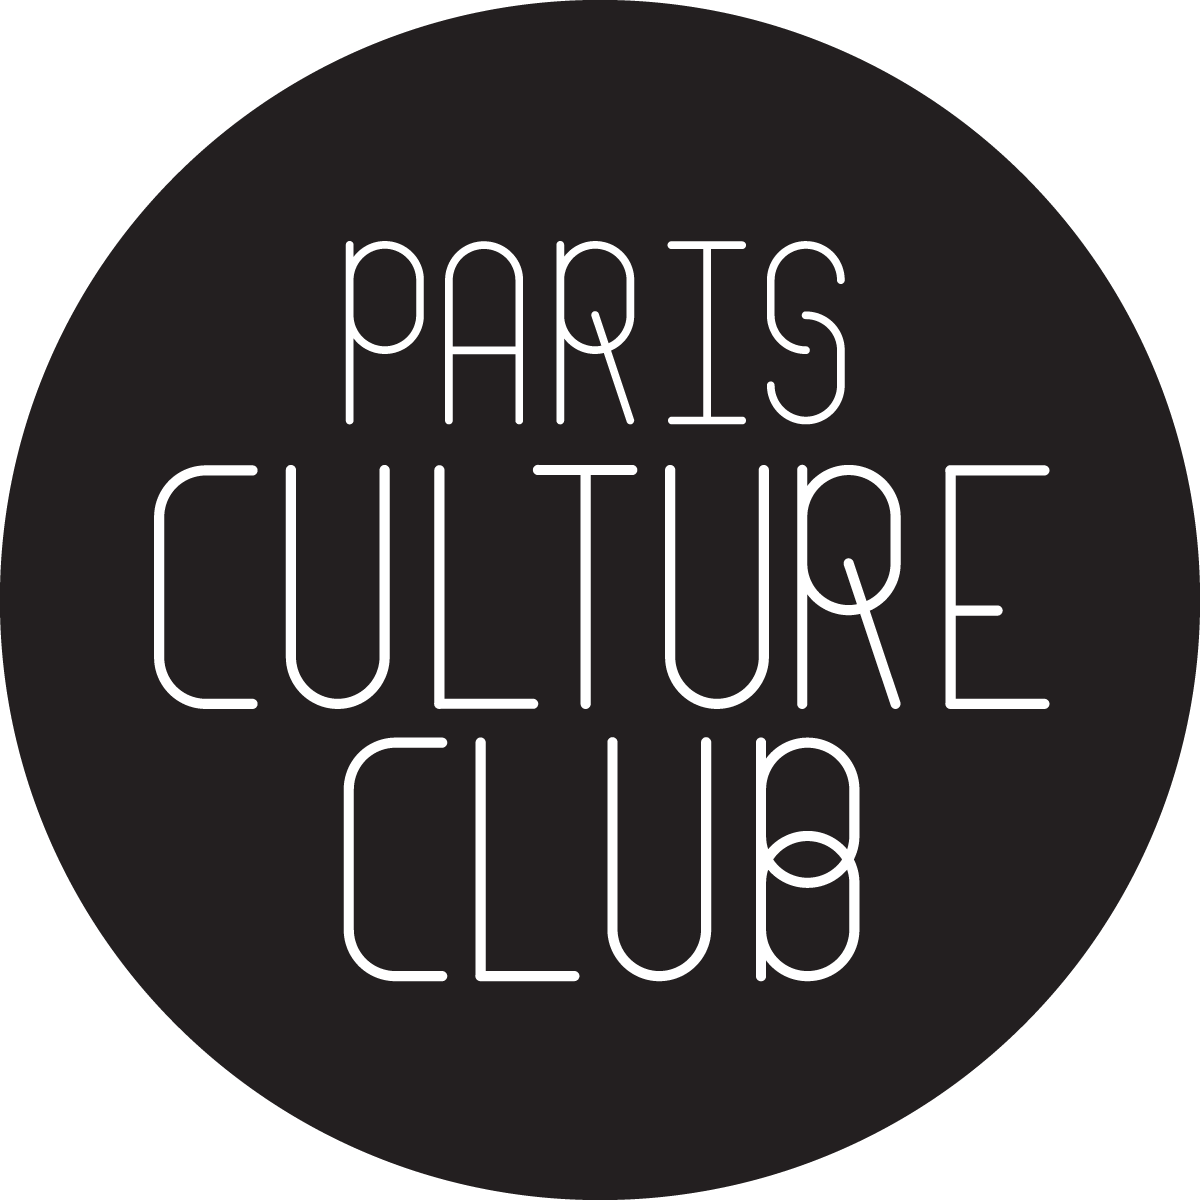 Paris culture club